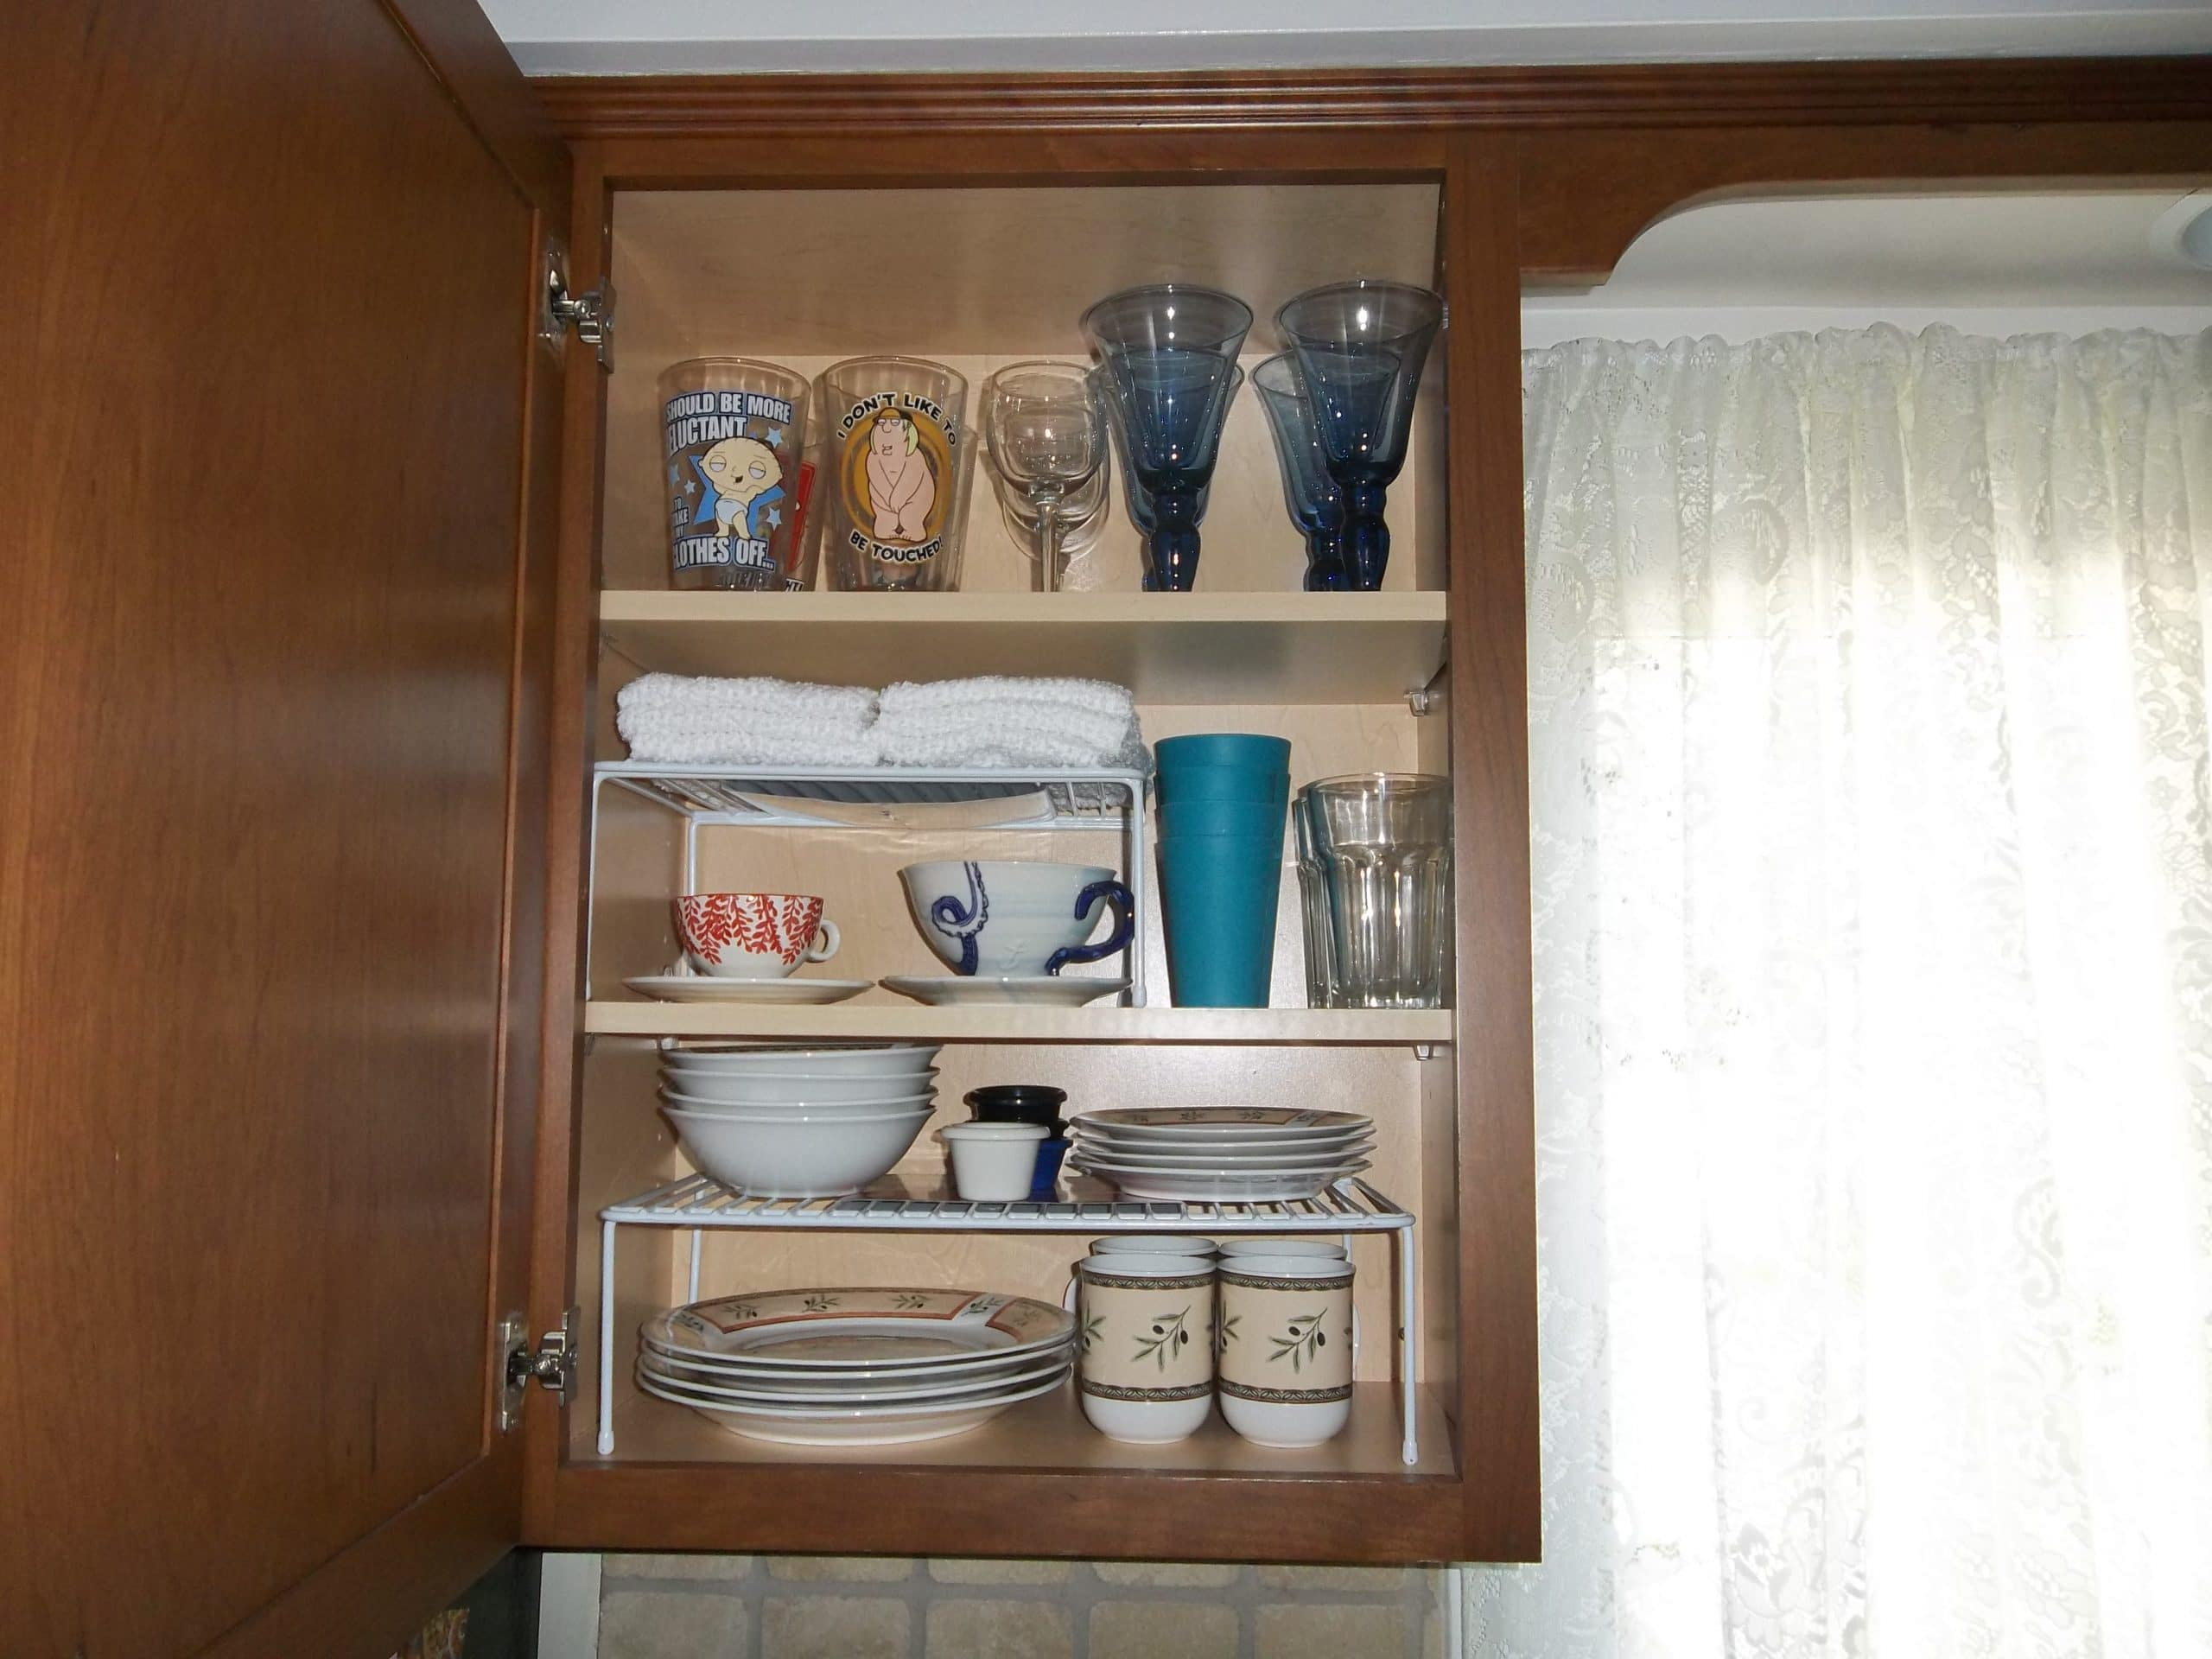 This is our dish cabinet nice and neat with the white cabinet organizers.